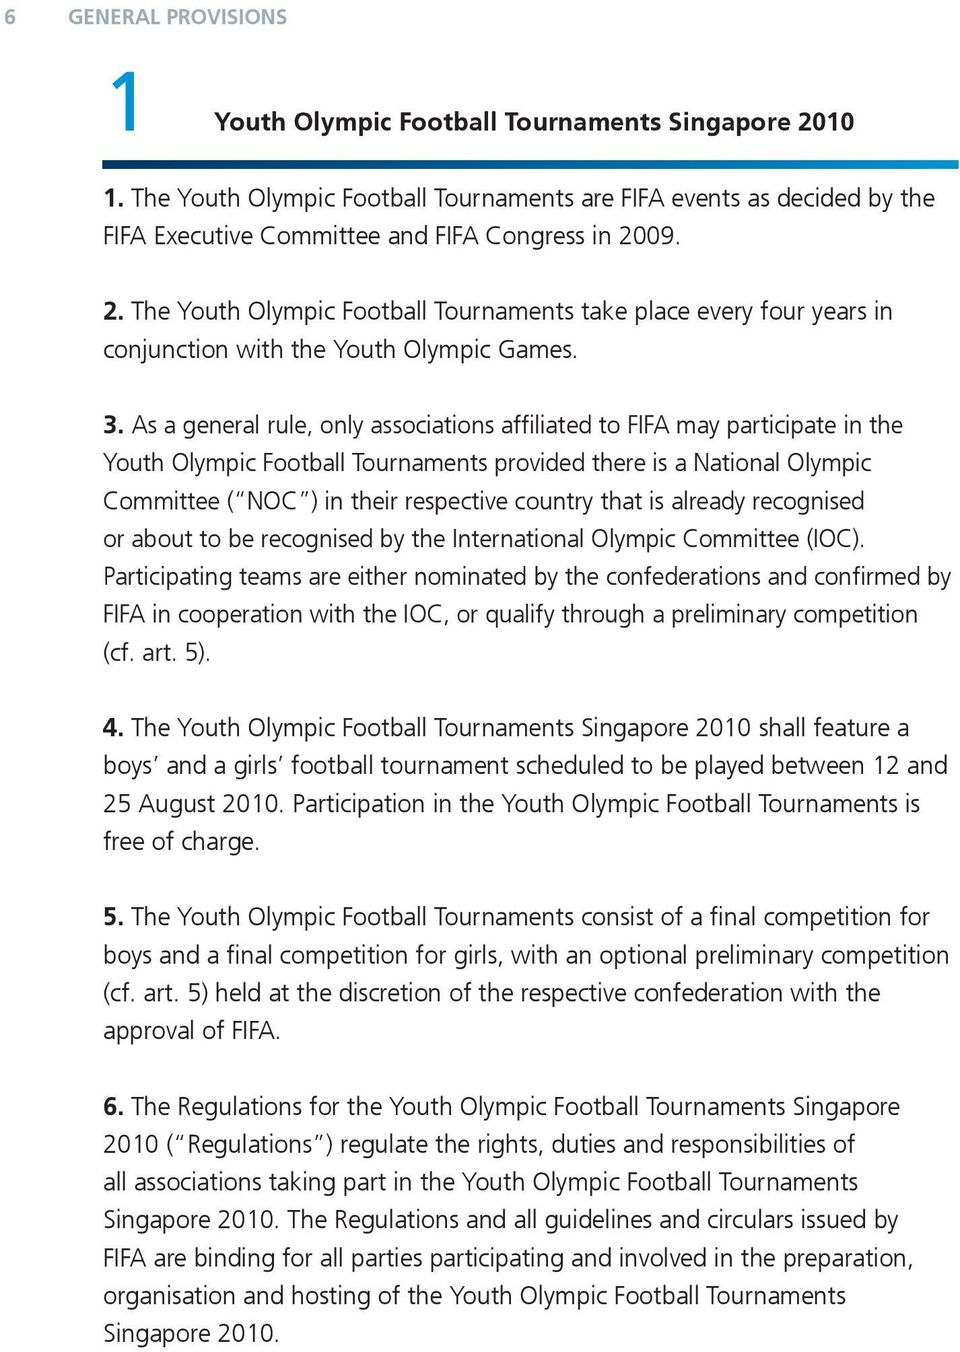 As a general rule, only associations affiliated to FIFA may participate in the Youth Olympic Football Tournaments provided there is a National Olympic Committee ( NOC ) in their respective country